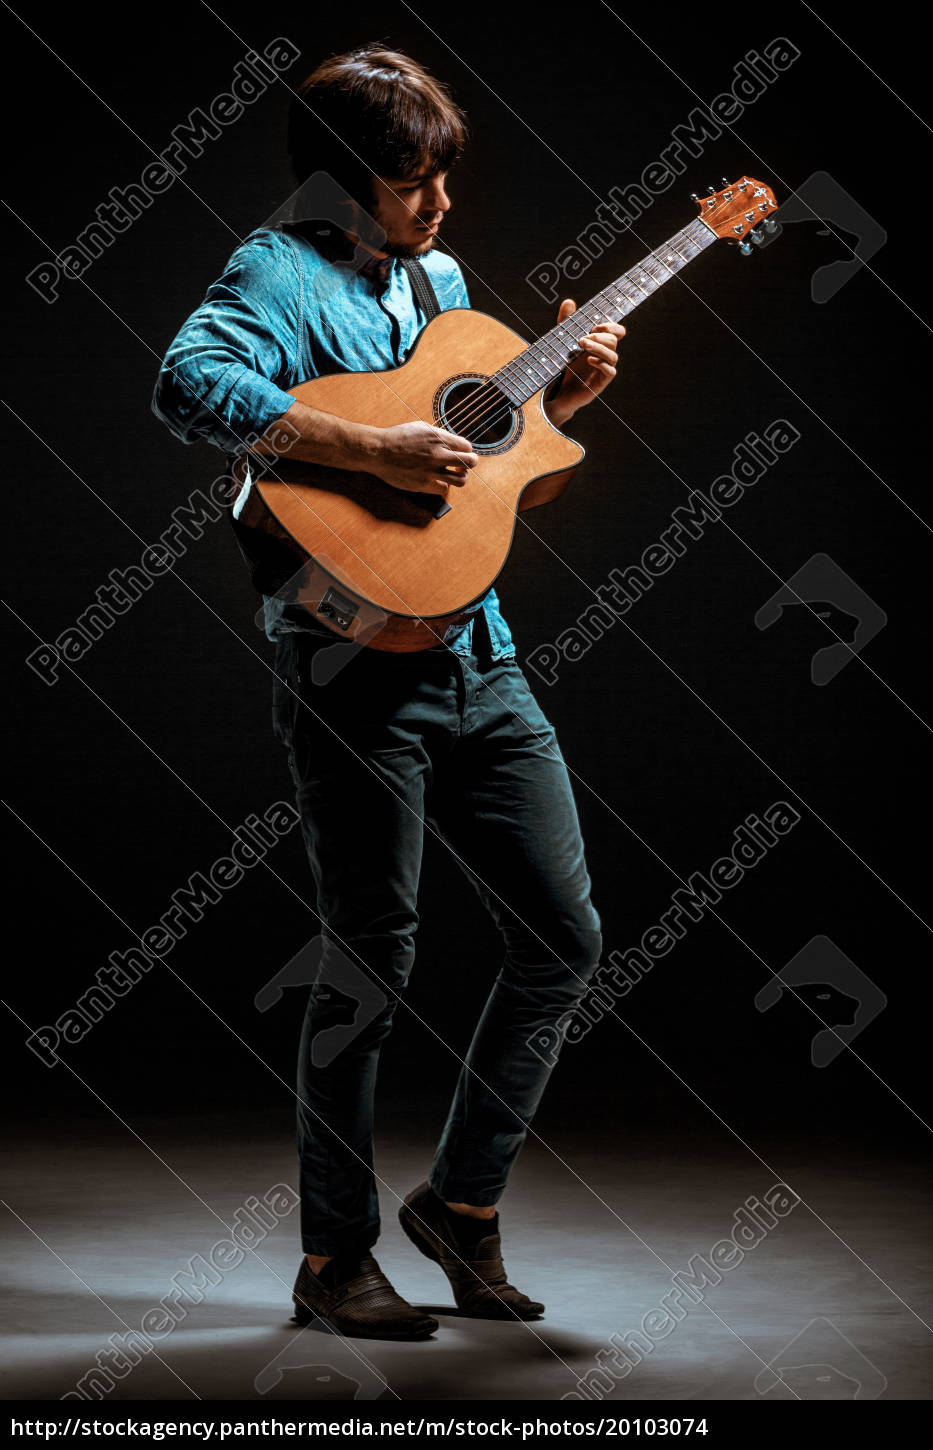 cool, guy, standing, with, guitar, on - 20103074